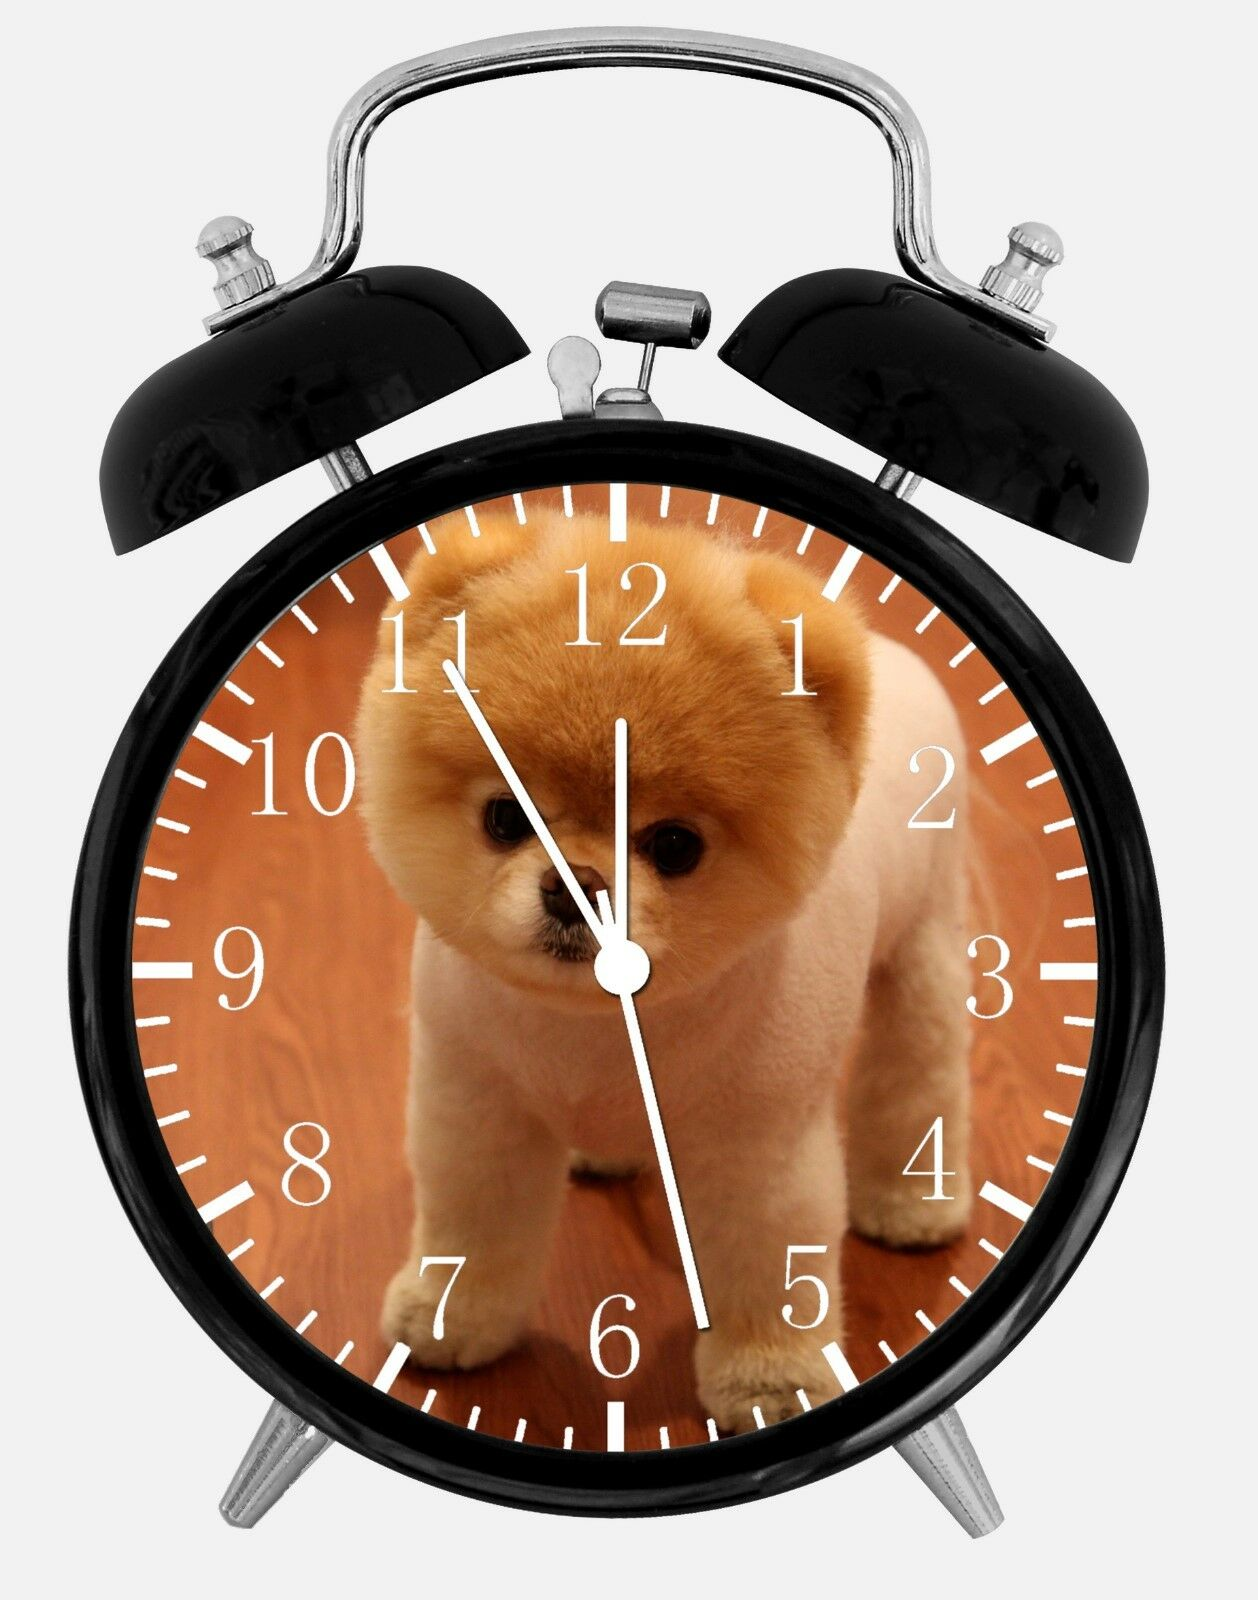 "Cute Pomeranian Alarm Desk Clock 3.75"" Home or Office Decor F10 Nice For Gift"